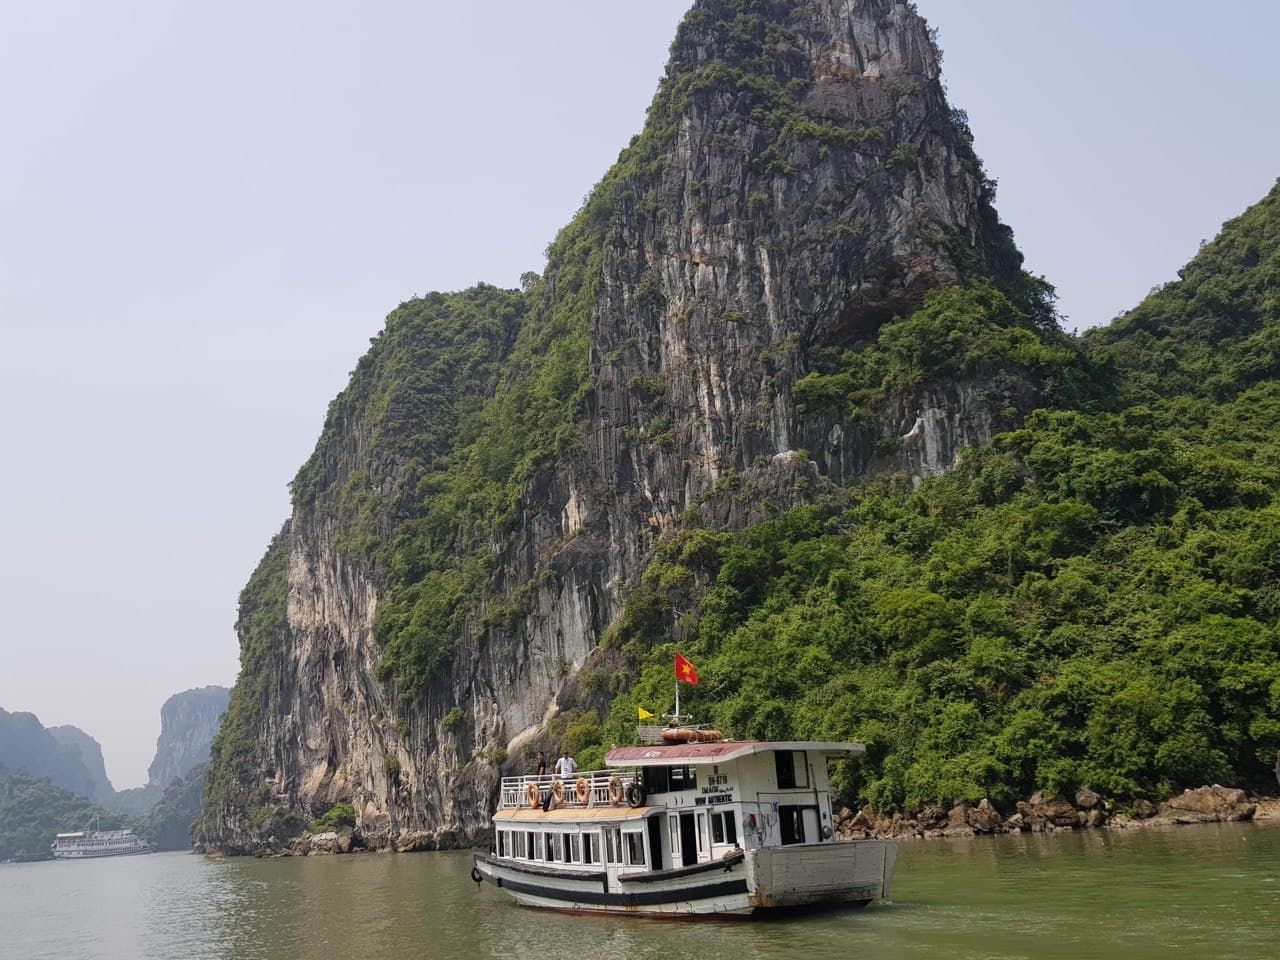 We took a boat trip to Halong Bay, Vietnam